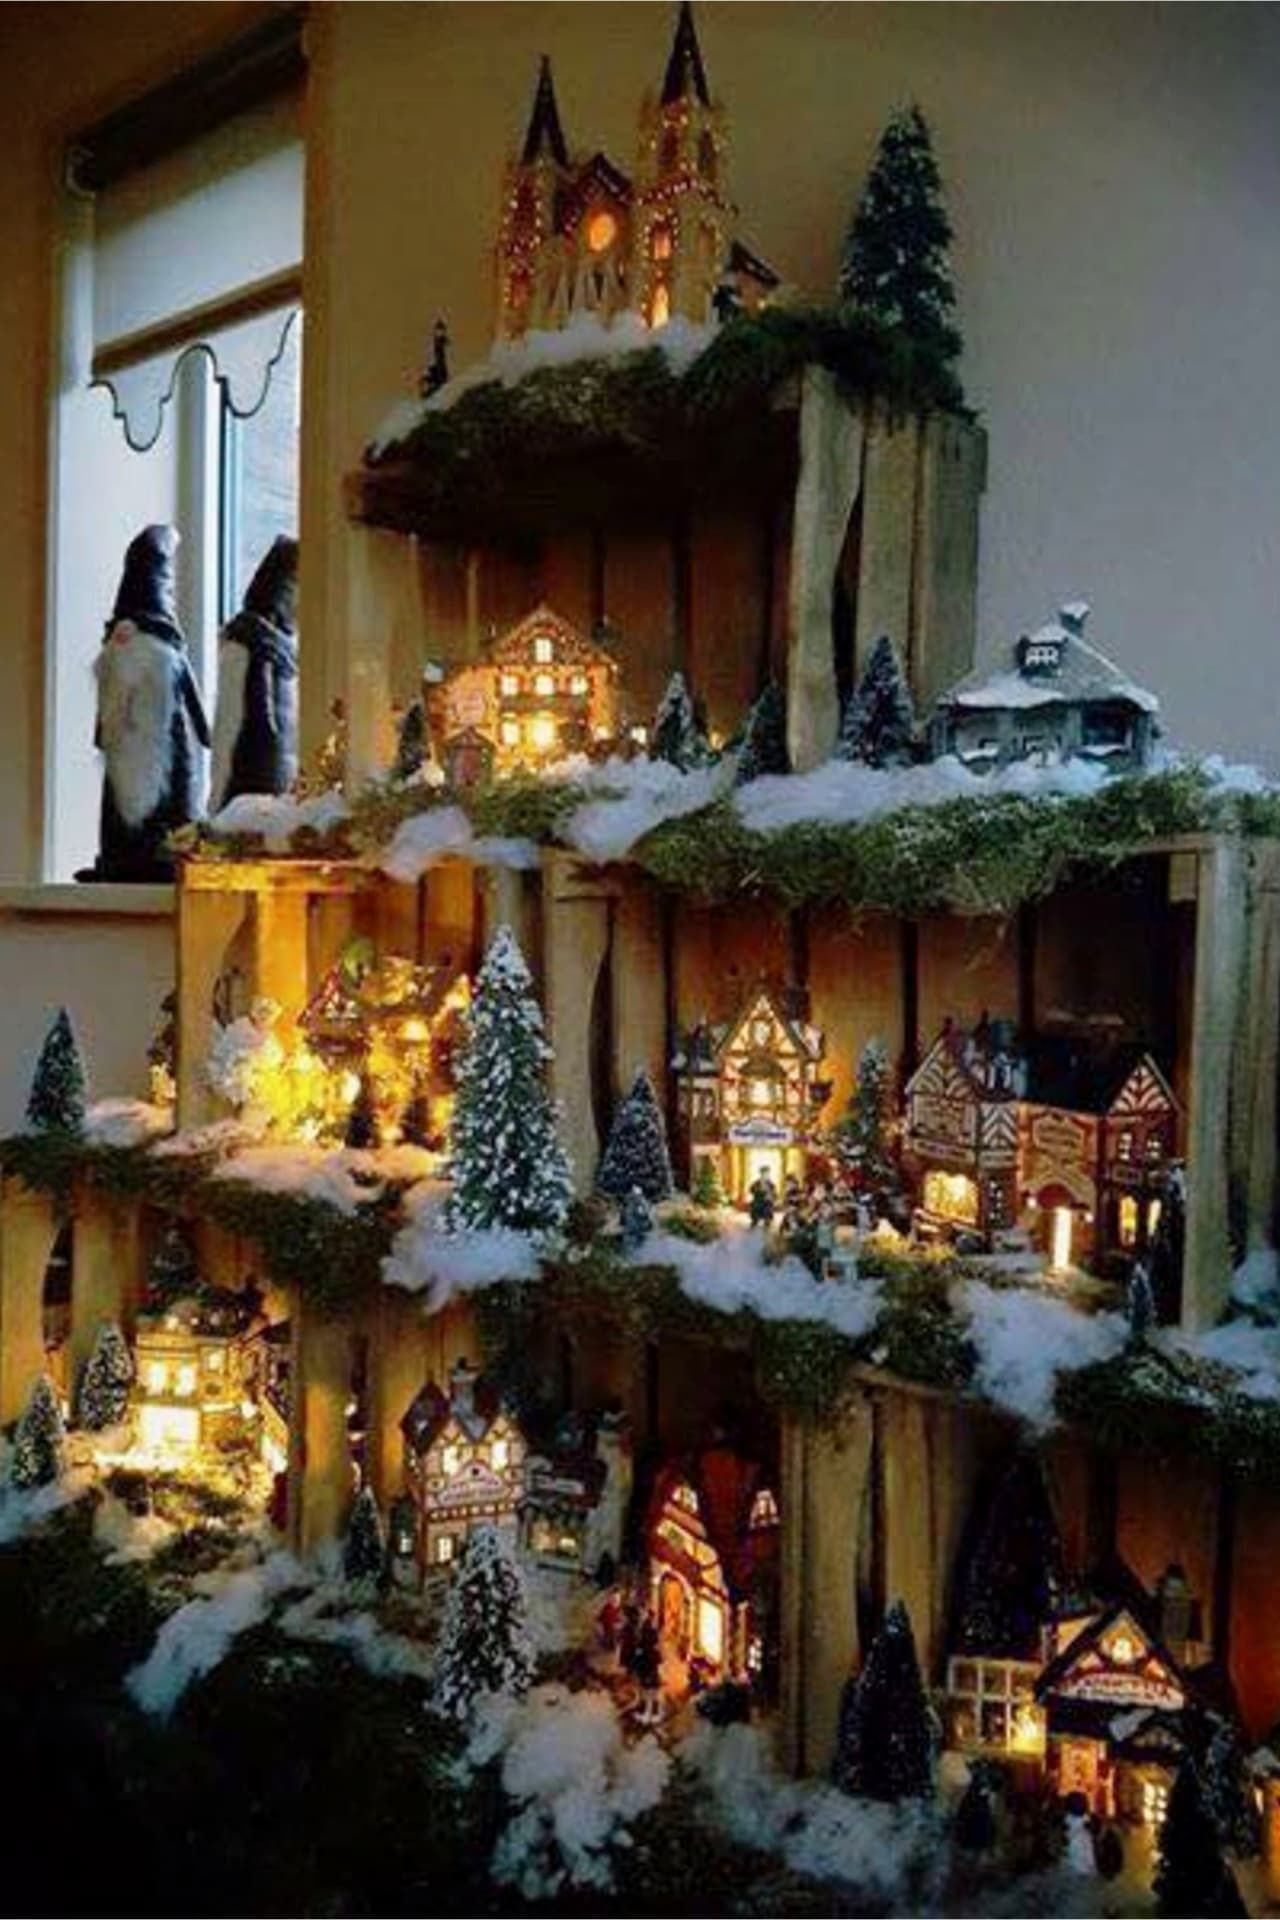 Tradition Weihnachten Diy Weihnachten: Einzigartige Und Ungewöhnliche Weihnachtsdekorationen, Zum Dieses Feier… In 2020 | Unusual Christmas Decorations, Christmas Village Display, Christmas Deco